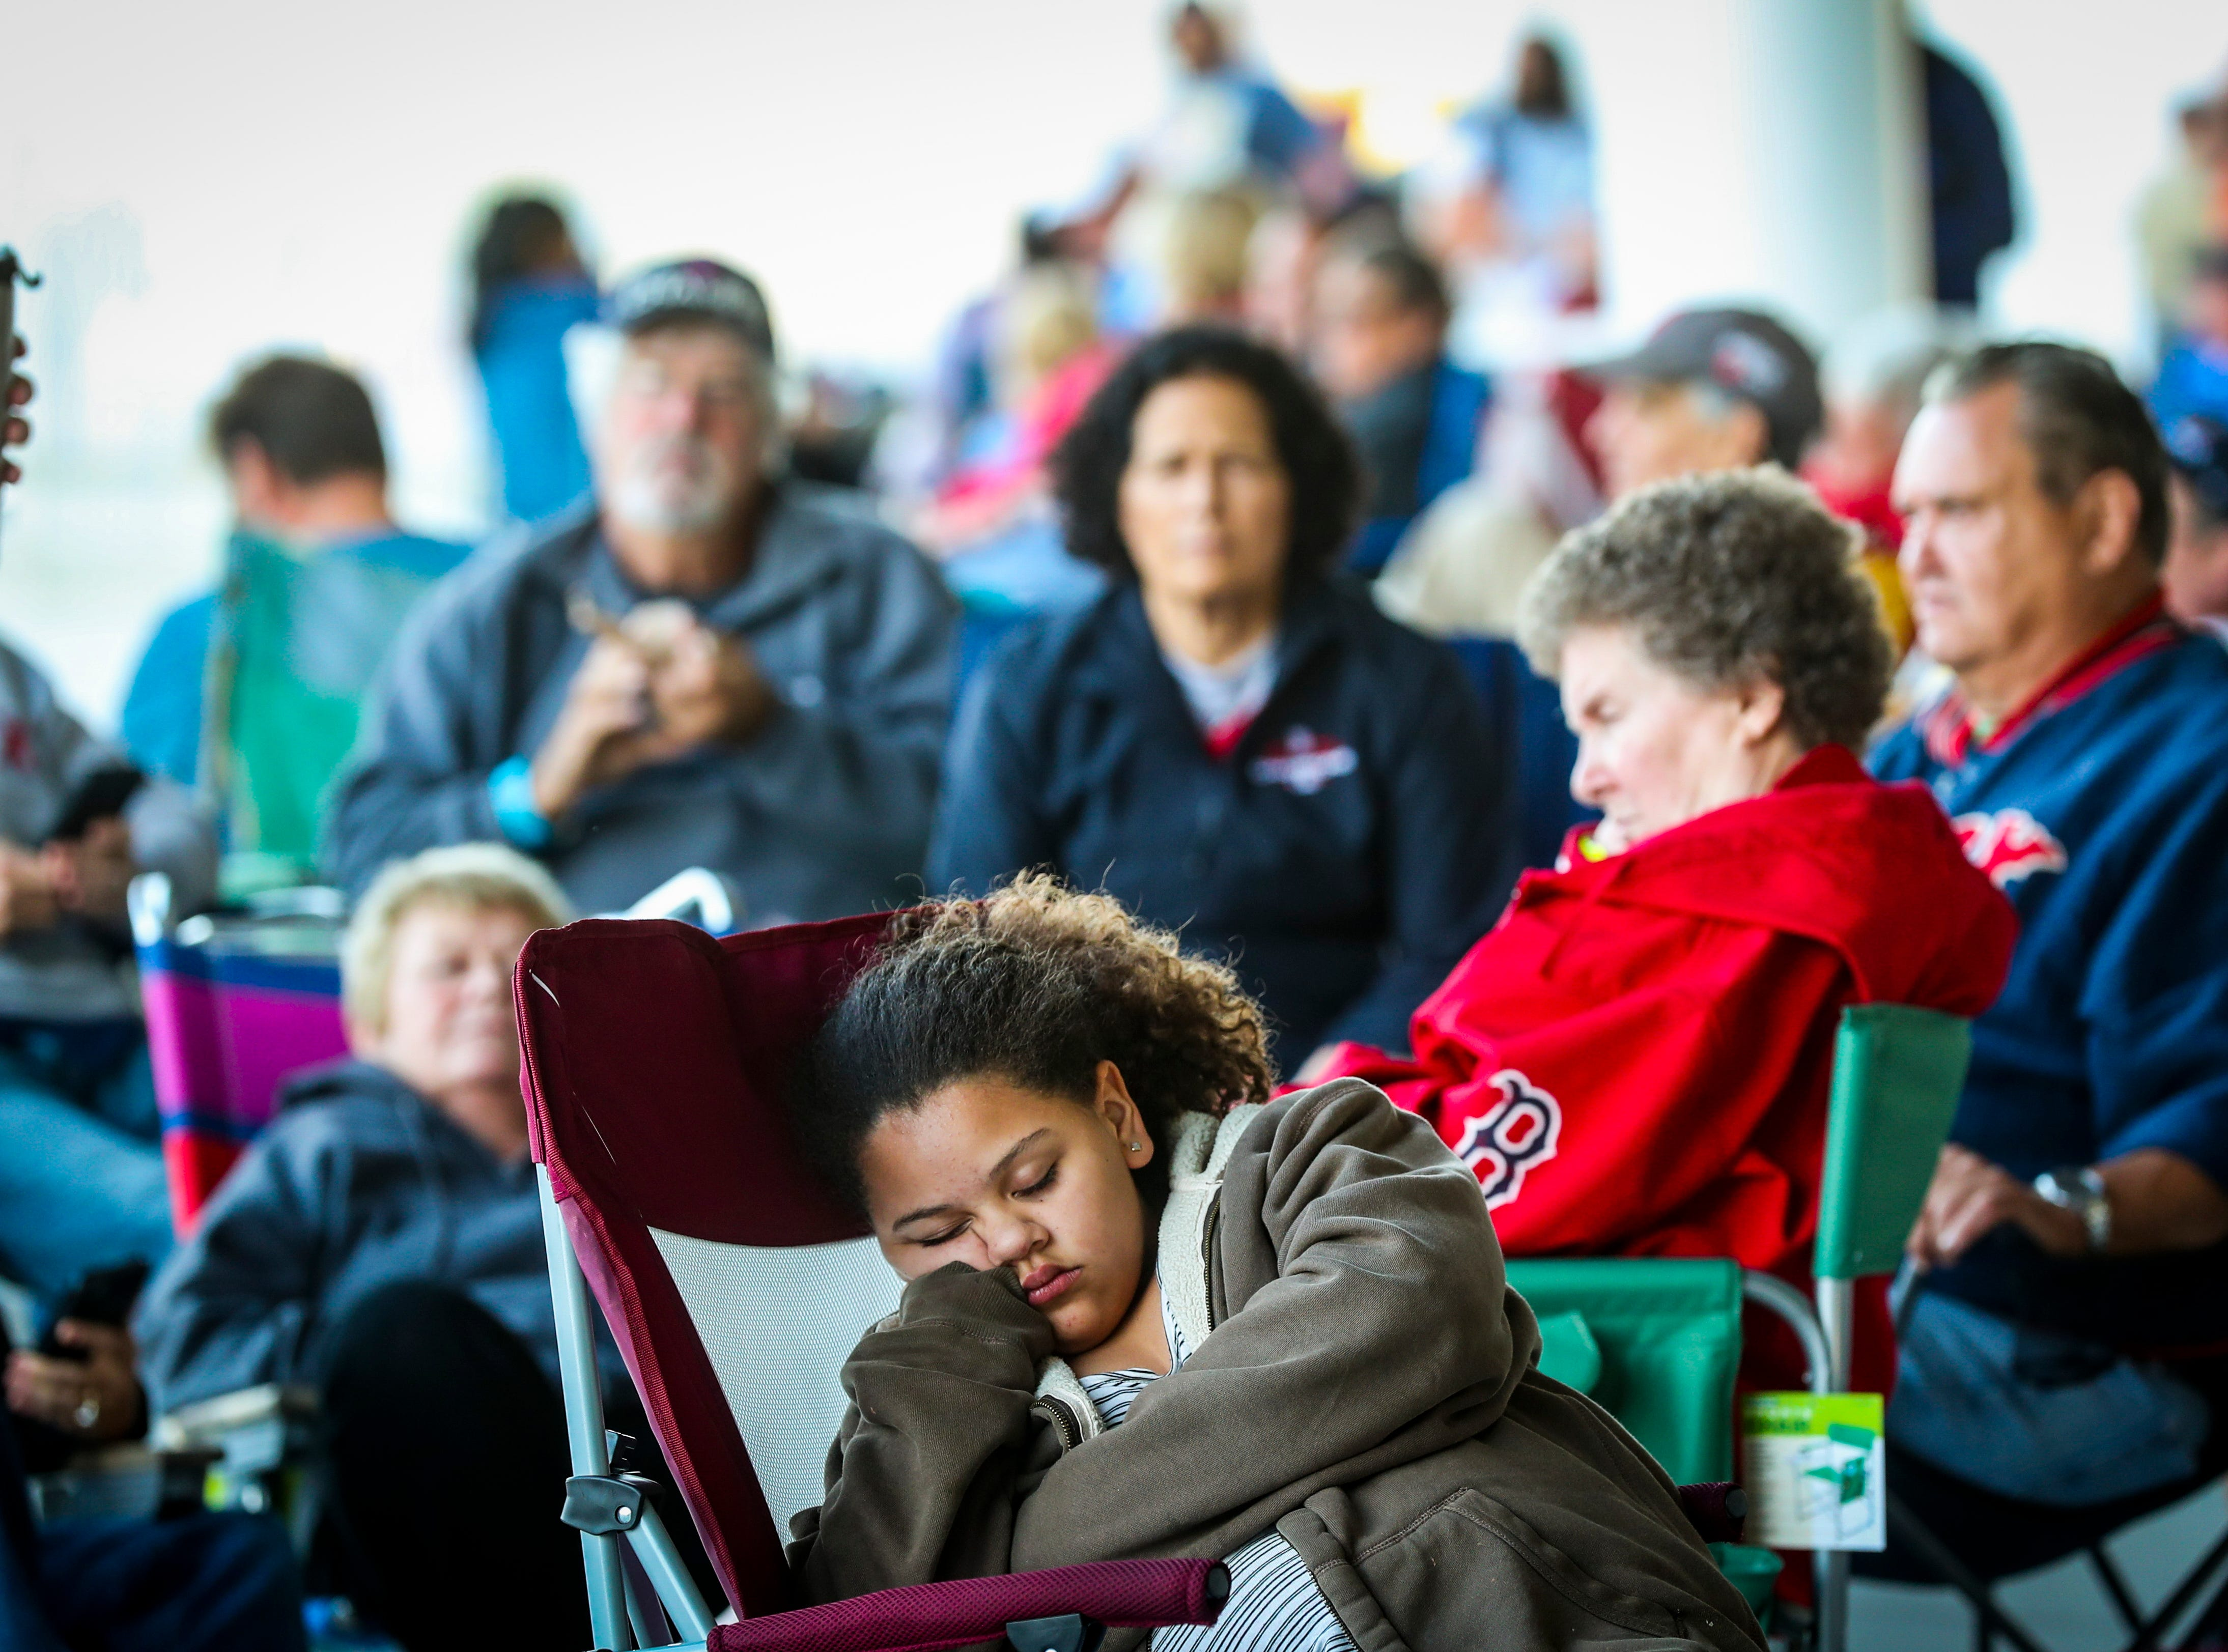 Jayliene Negron, 15 of Lehigh, snoozes in the early hours as she waits for the chance to buy Red Sox tickets with her family. Boston fans gathered in line for spring training tickets. The crowd is excited for this season after the Red Sox won the World Series.